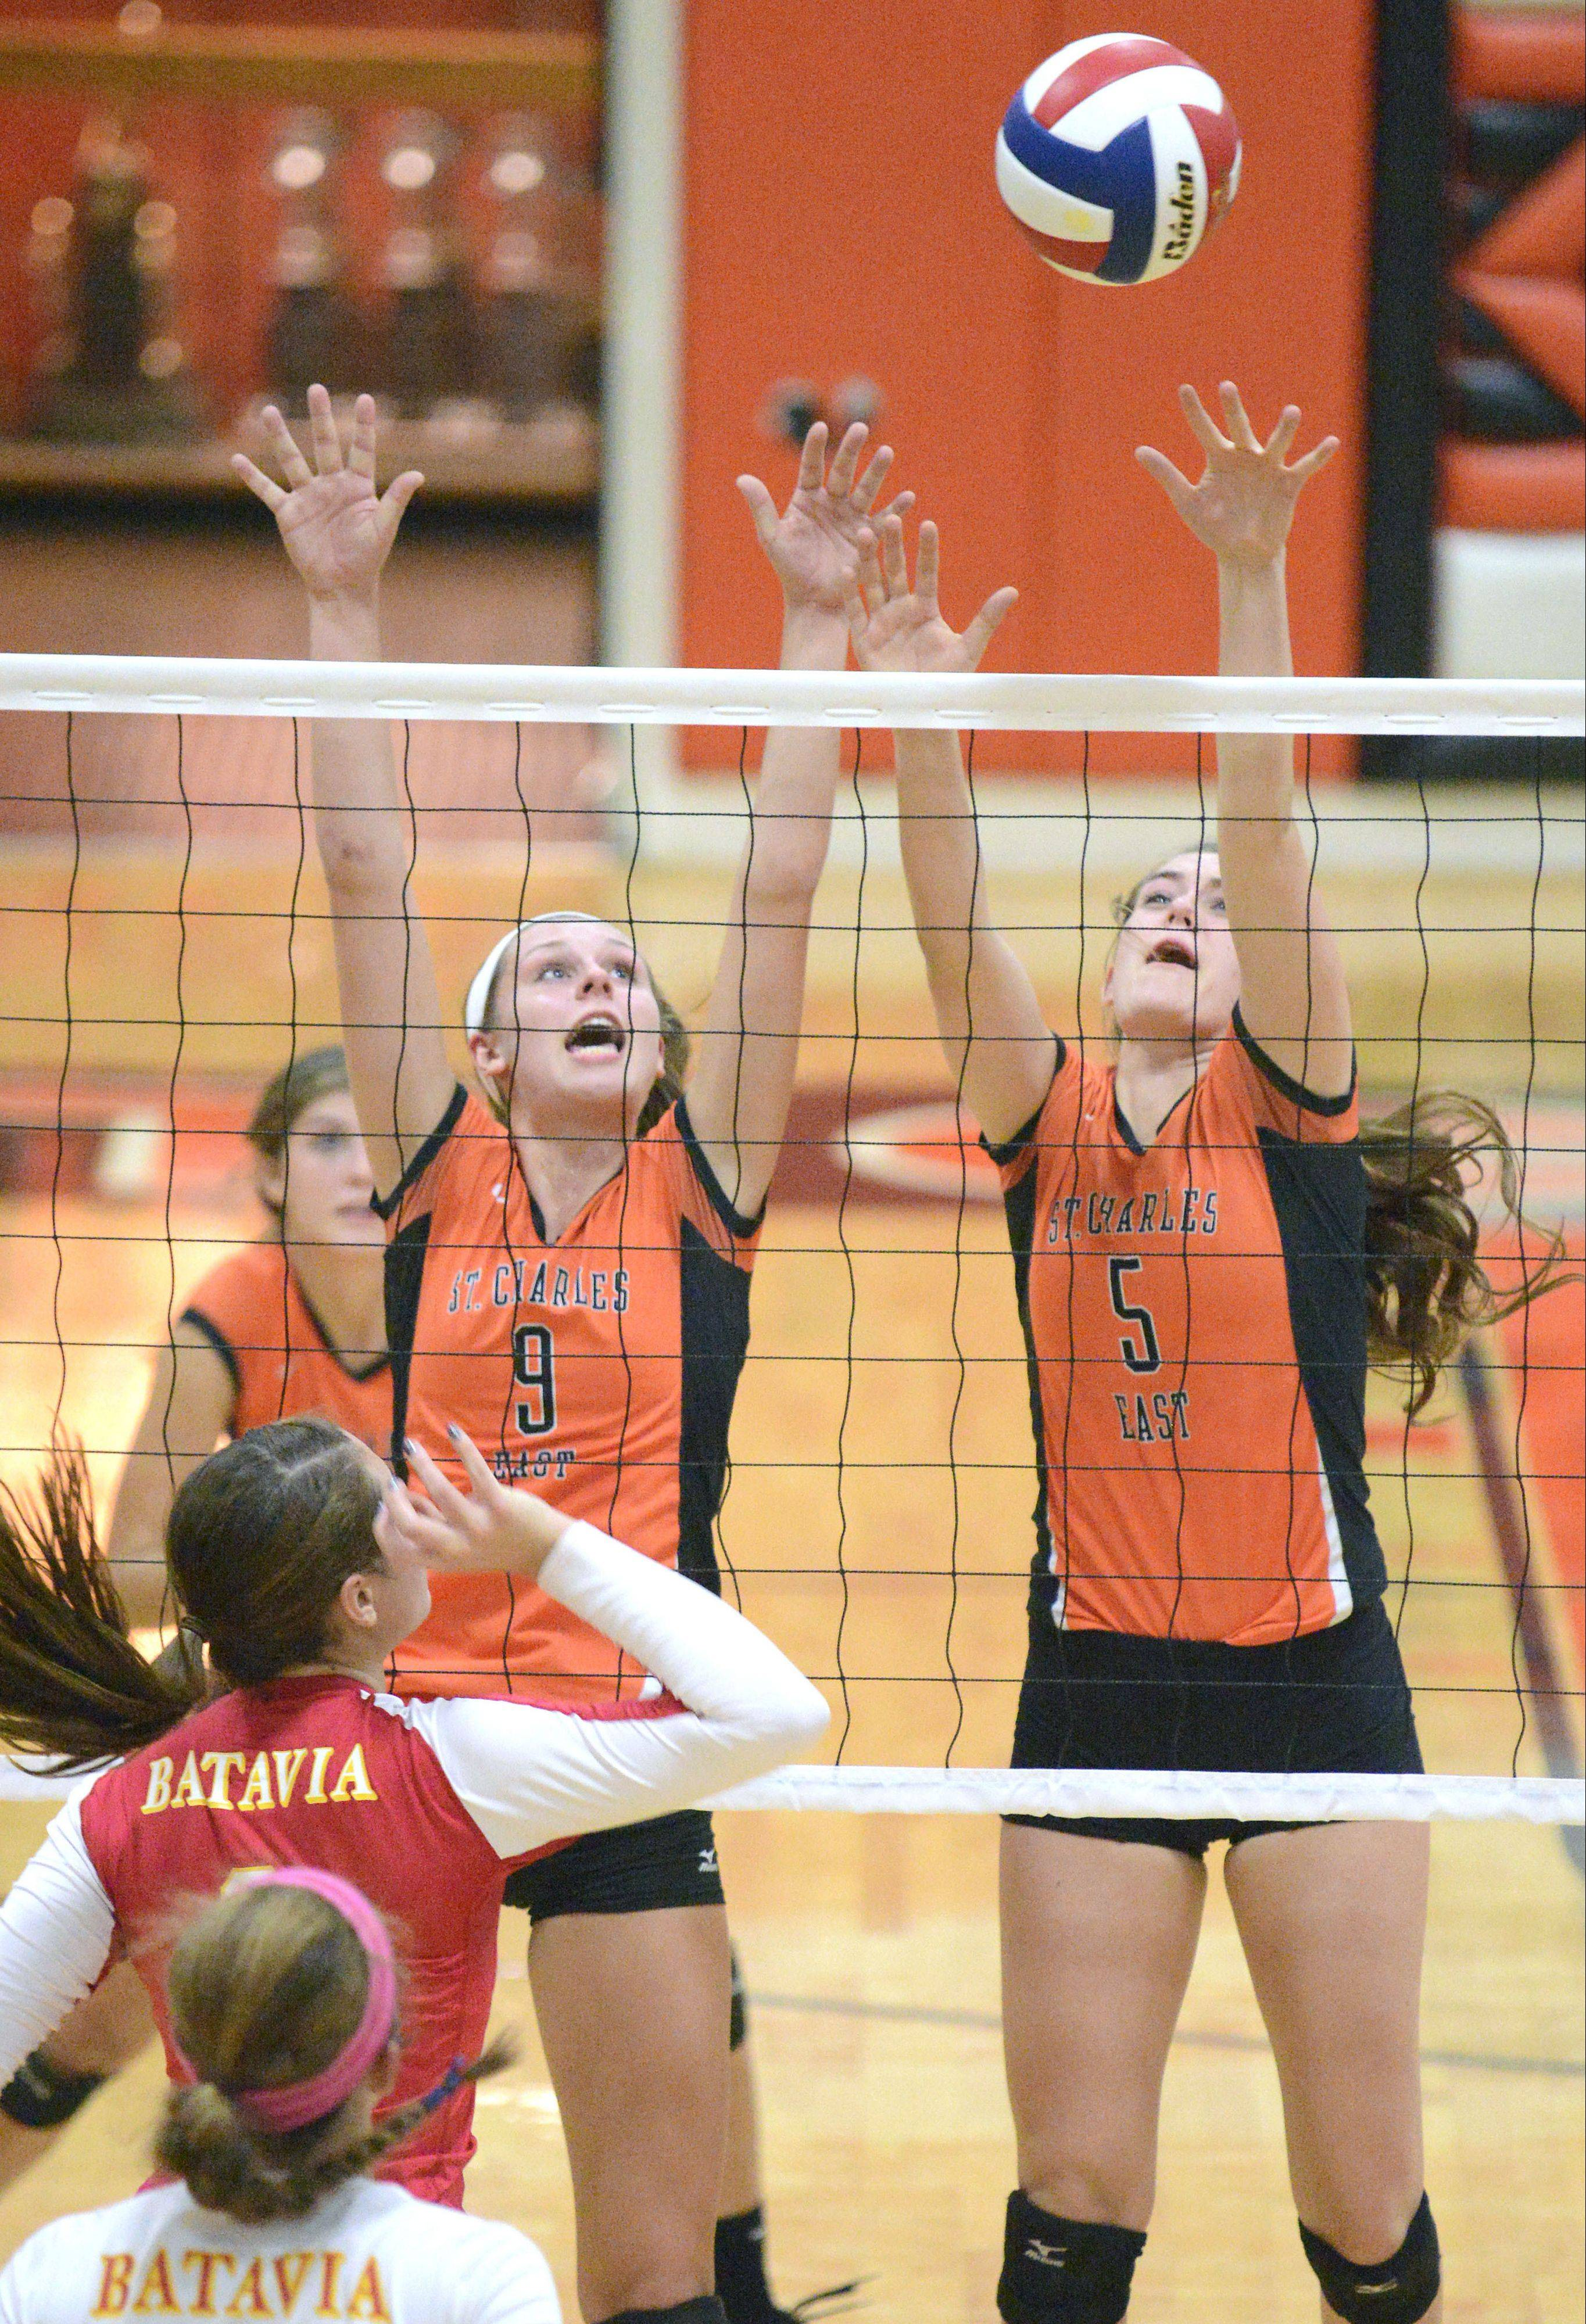 Above: St. Charles East's Megan Schildmeyer and Alex Mazanke block a spike by Batavia's Heather Meyer Tuesday in St. Charles. Right: Batavia's Jancy Lundbergtries to hit past St. Charles East's Dana Voltolina and Mazanke.